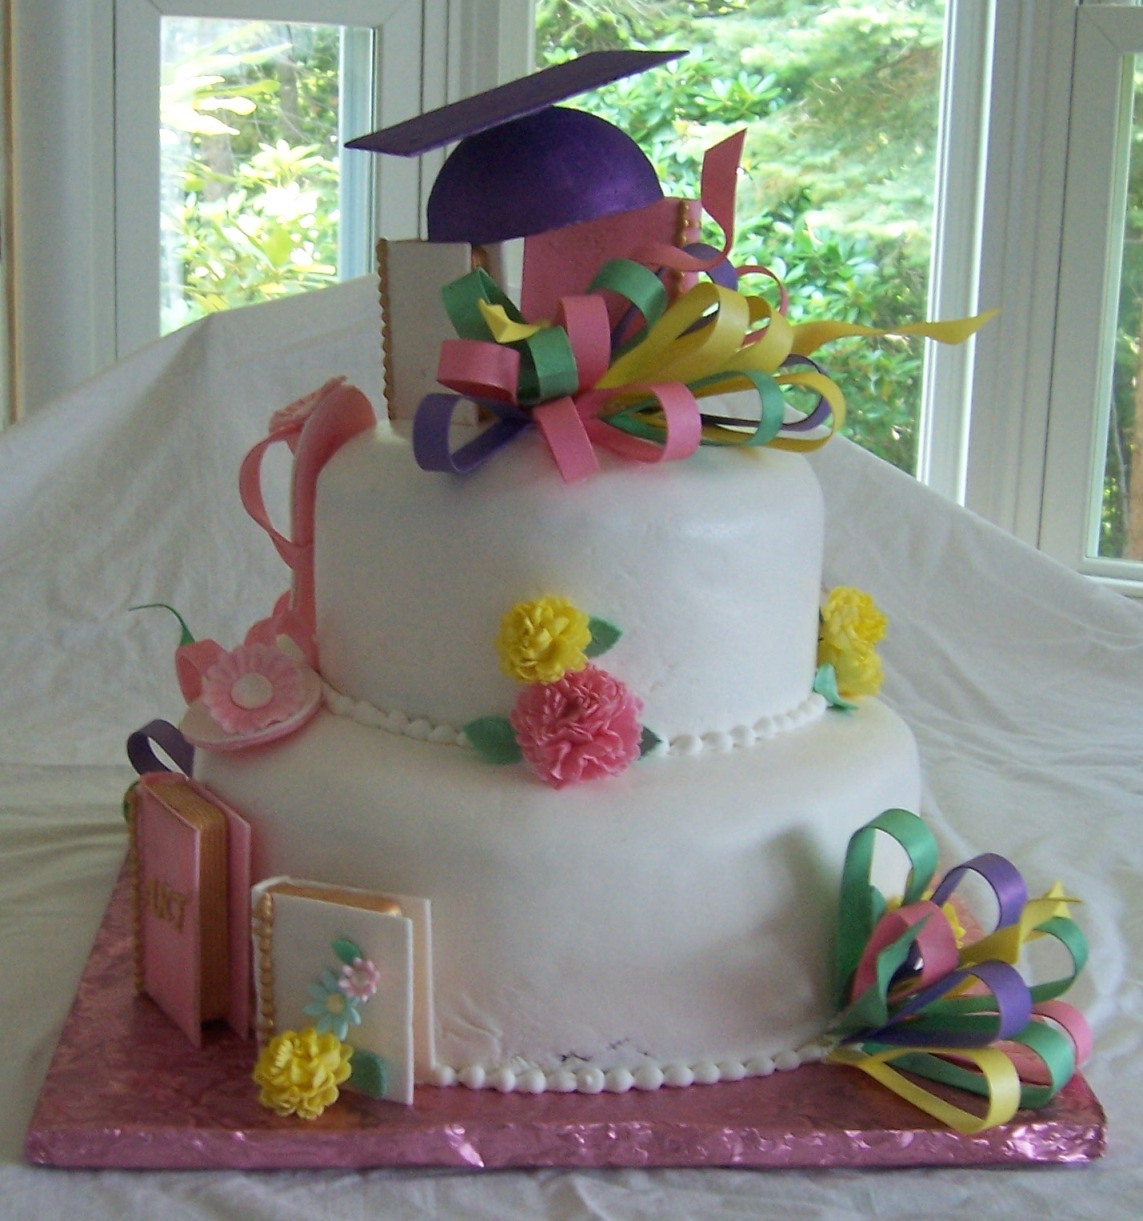 Awesome cakes designs  for graduation